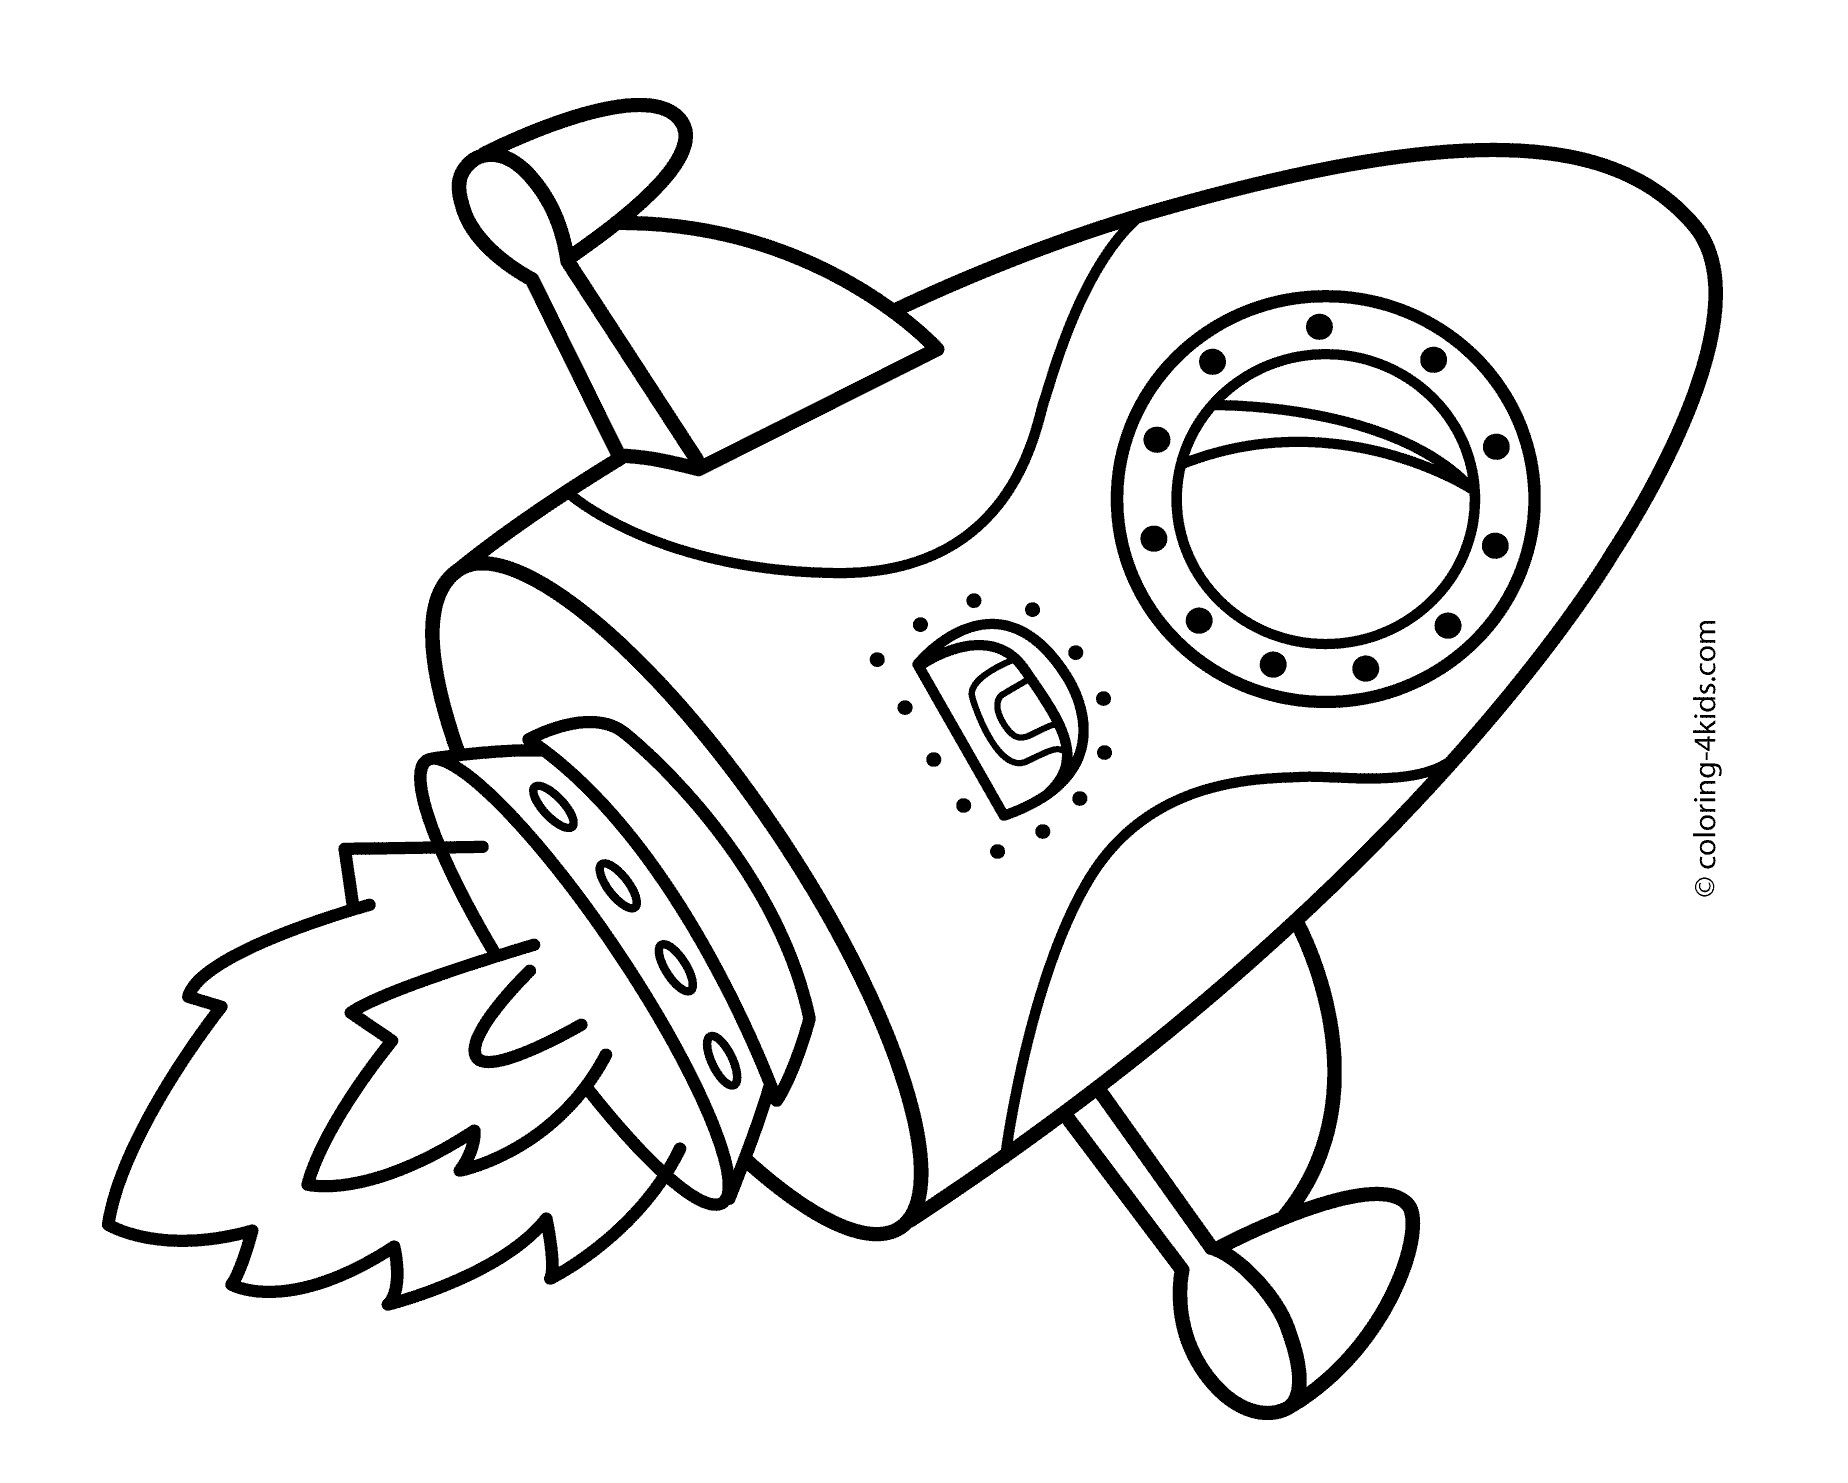 3449 Rocket free clipart.